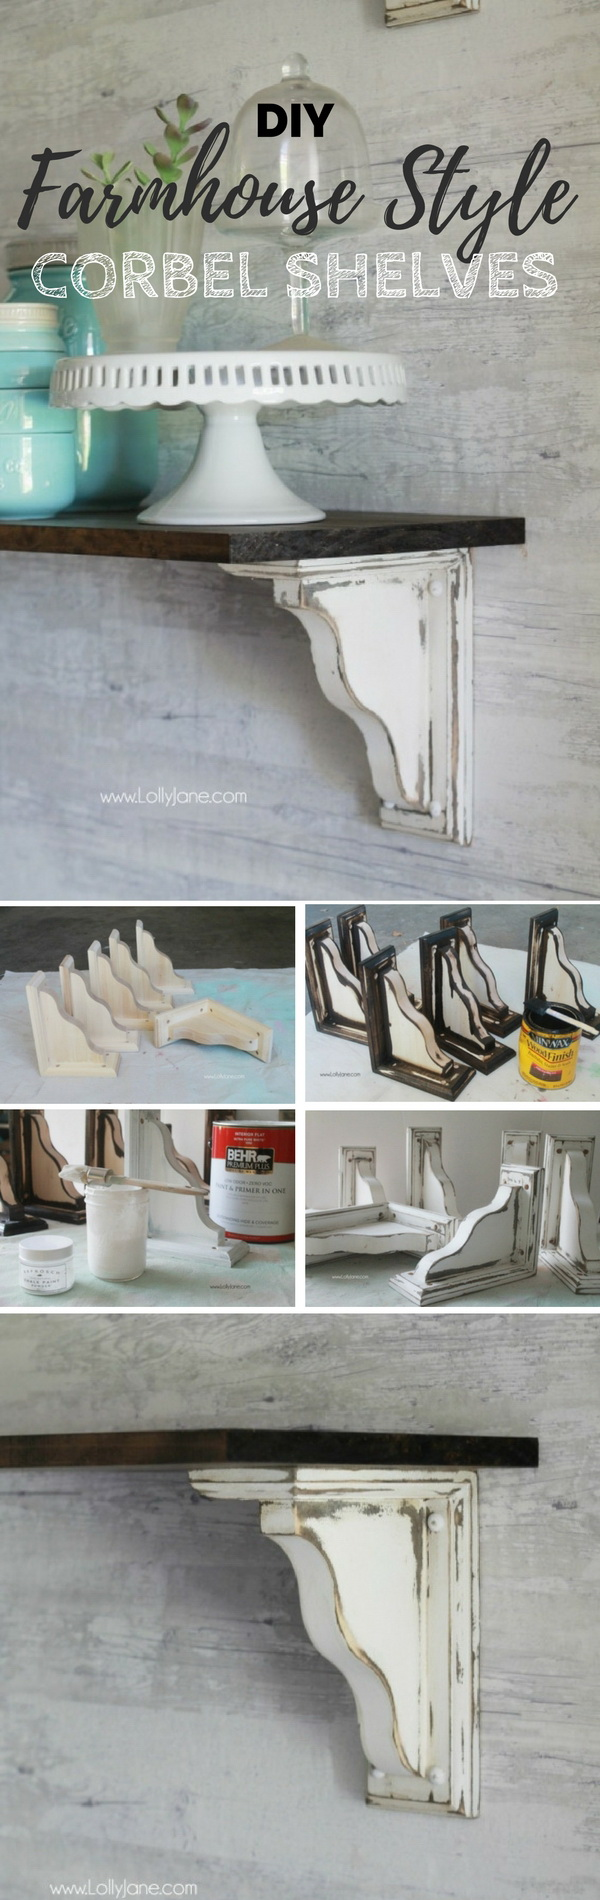 DIY Farmhouse Style Corner Shelves. Free DIY building plan for these easy and stylish corner shelves!